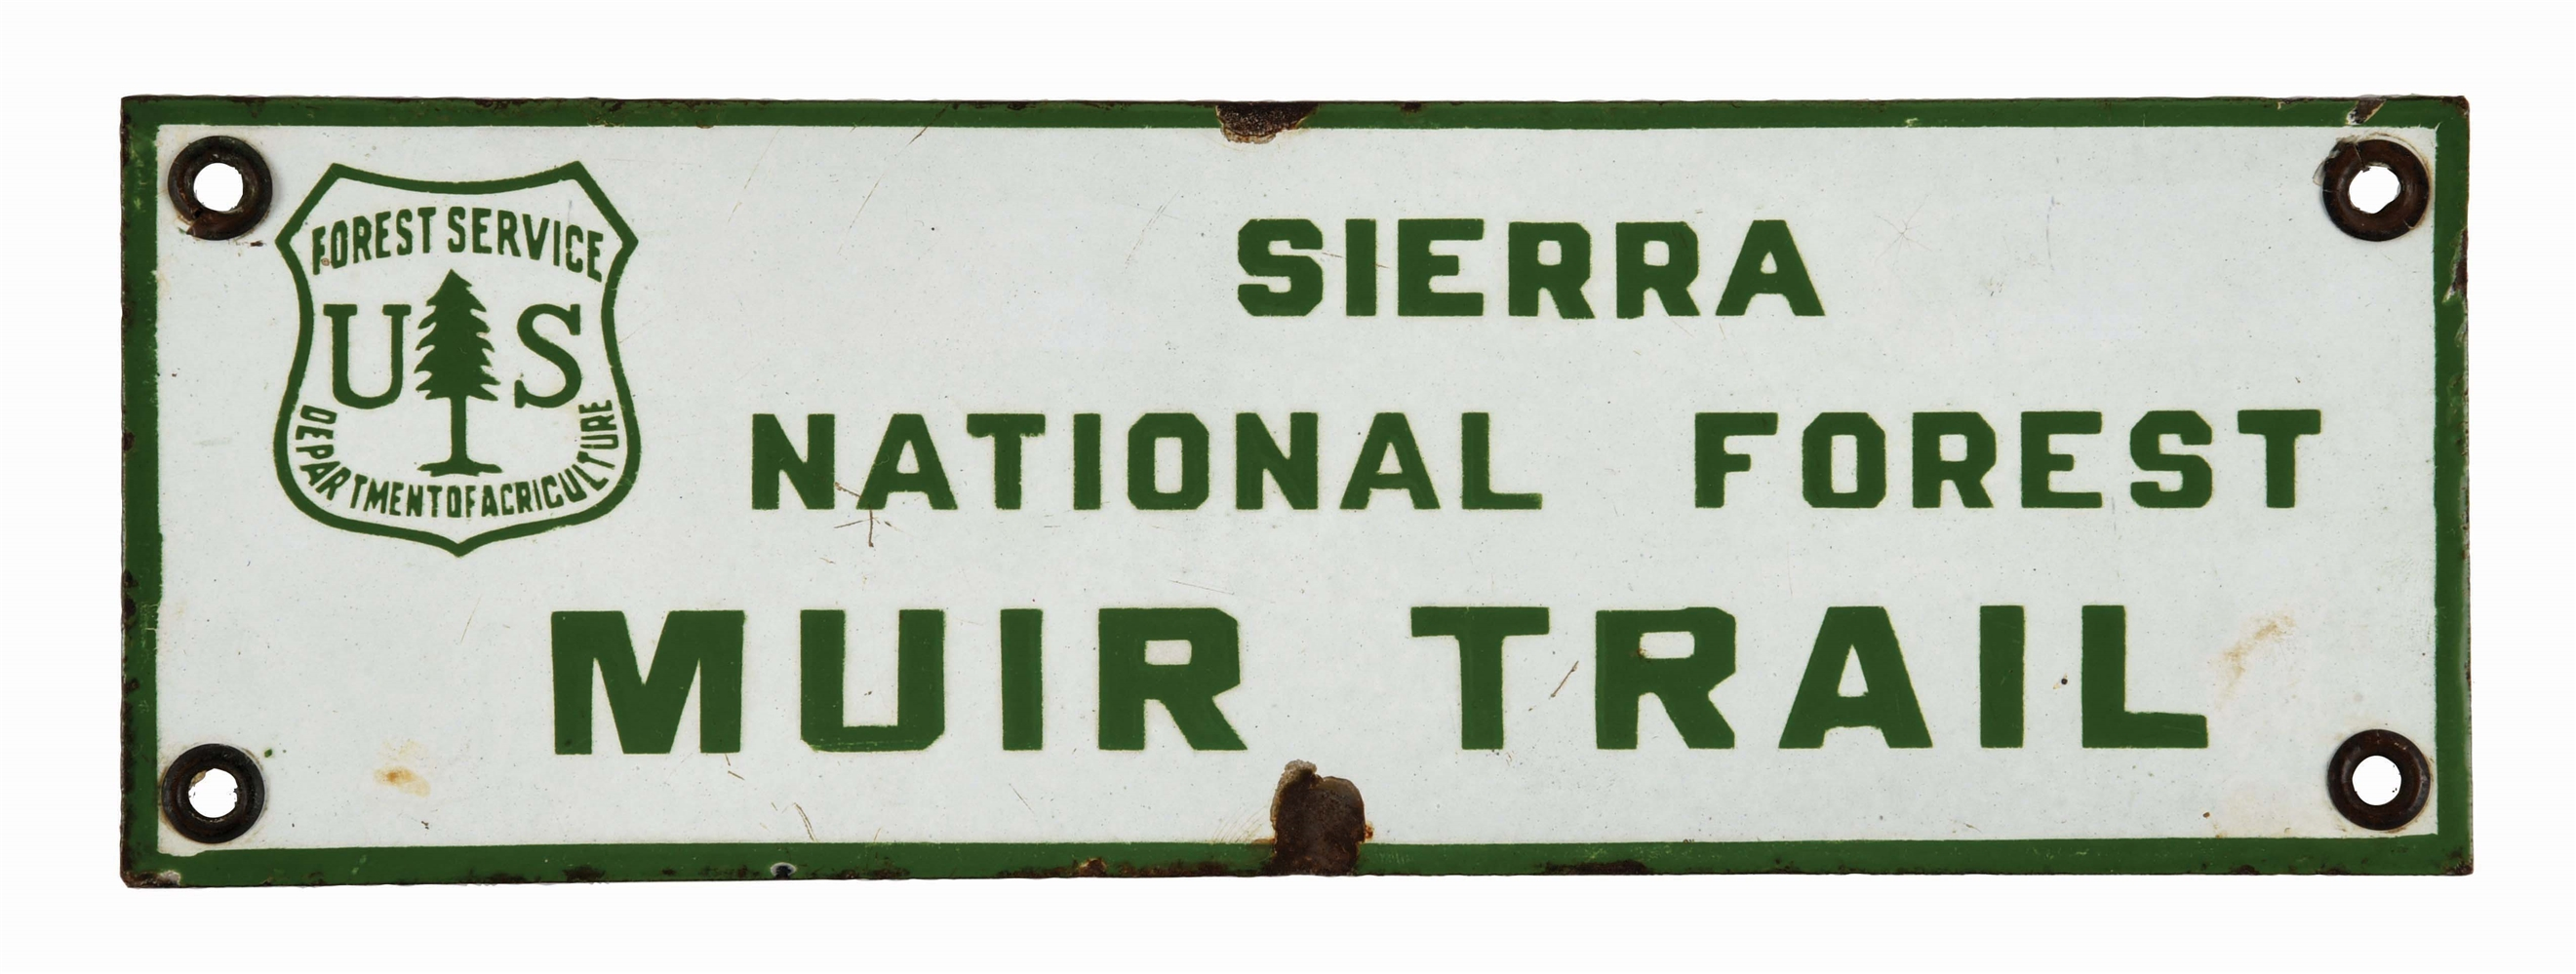 SIERRA NATIONAL FOREST MUIR TRAIL FOREST SERVICE PORCELAIN SIGN.